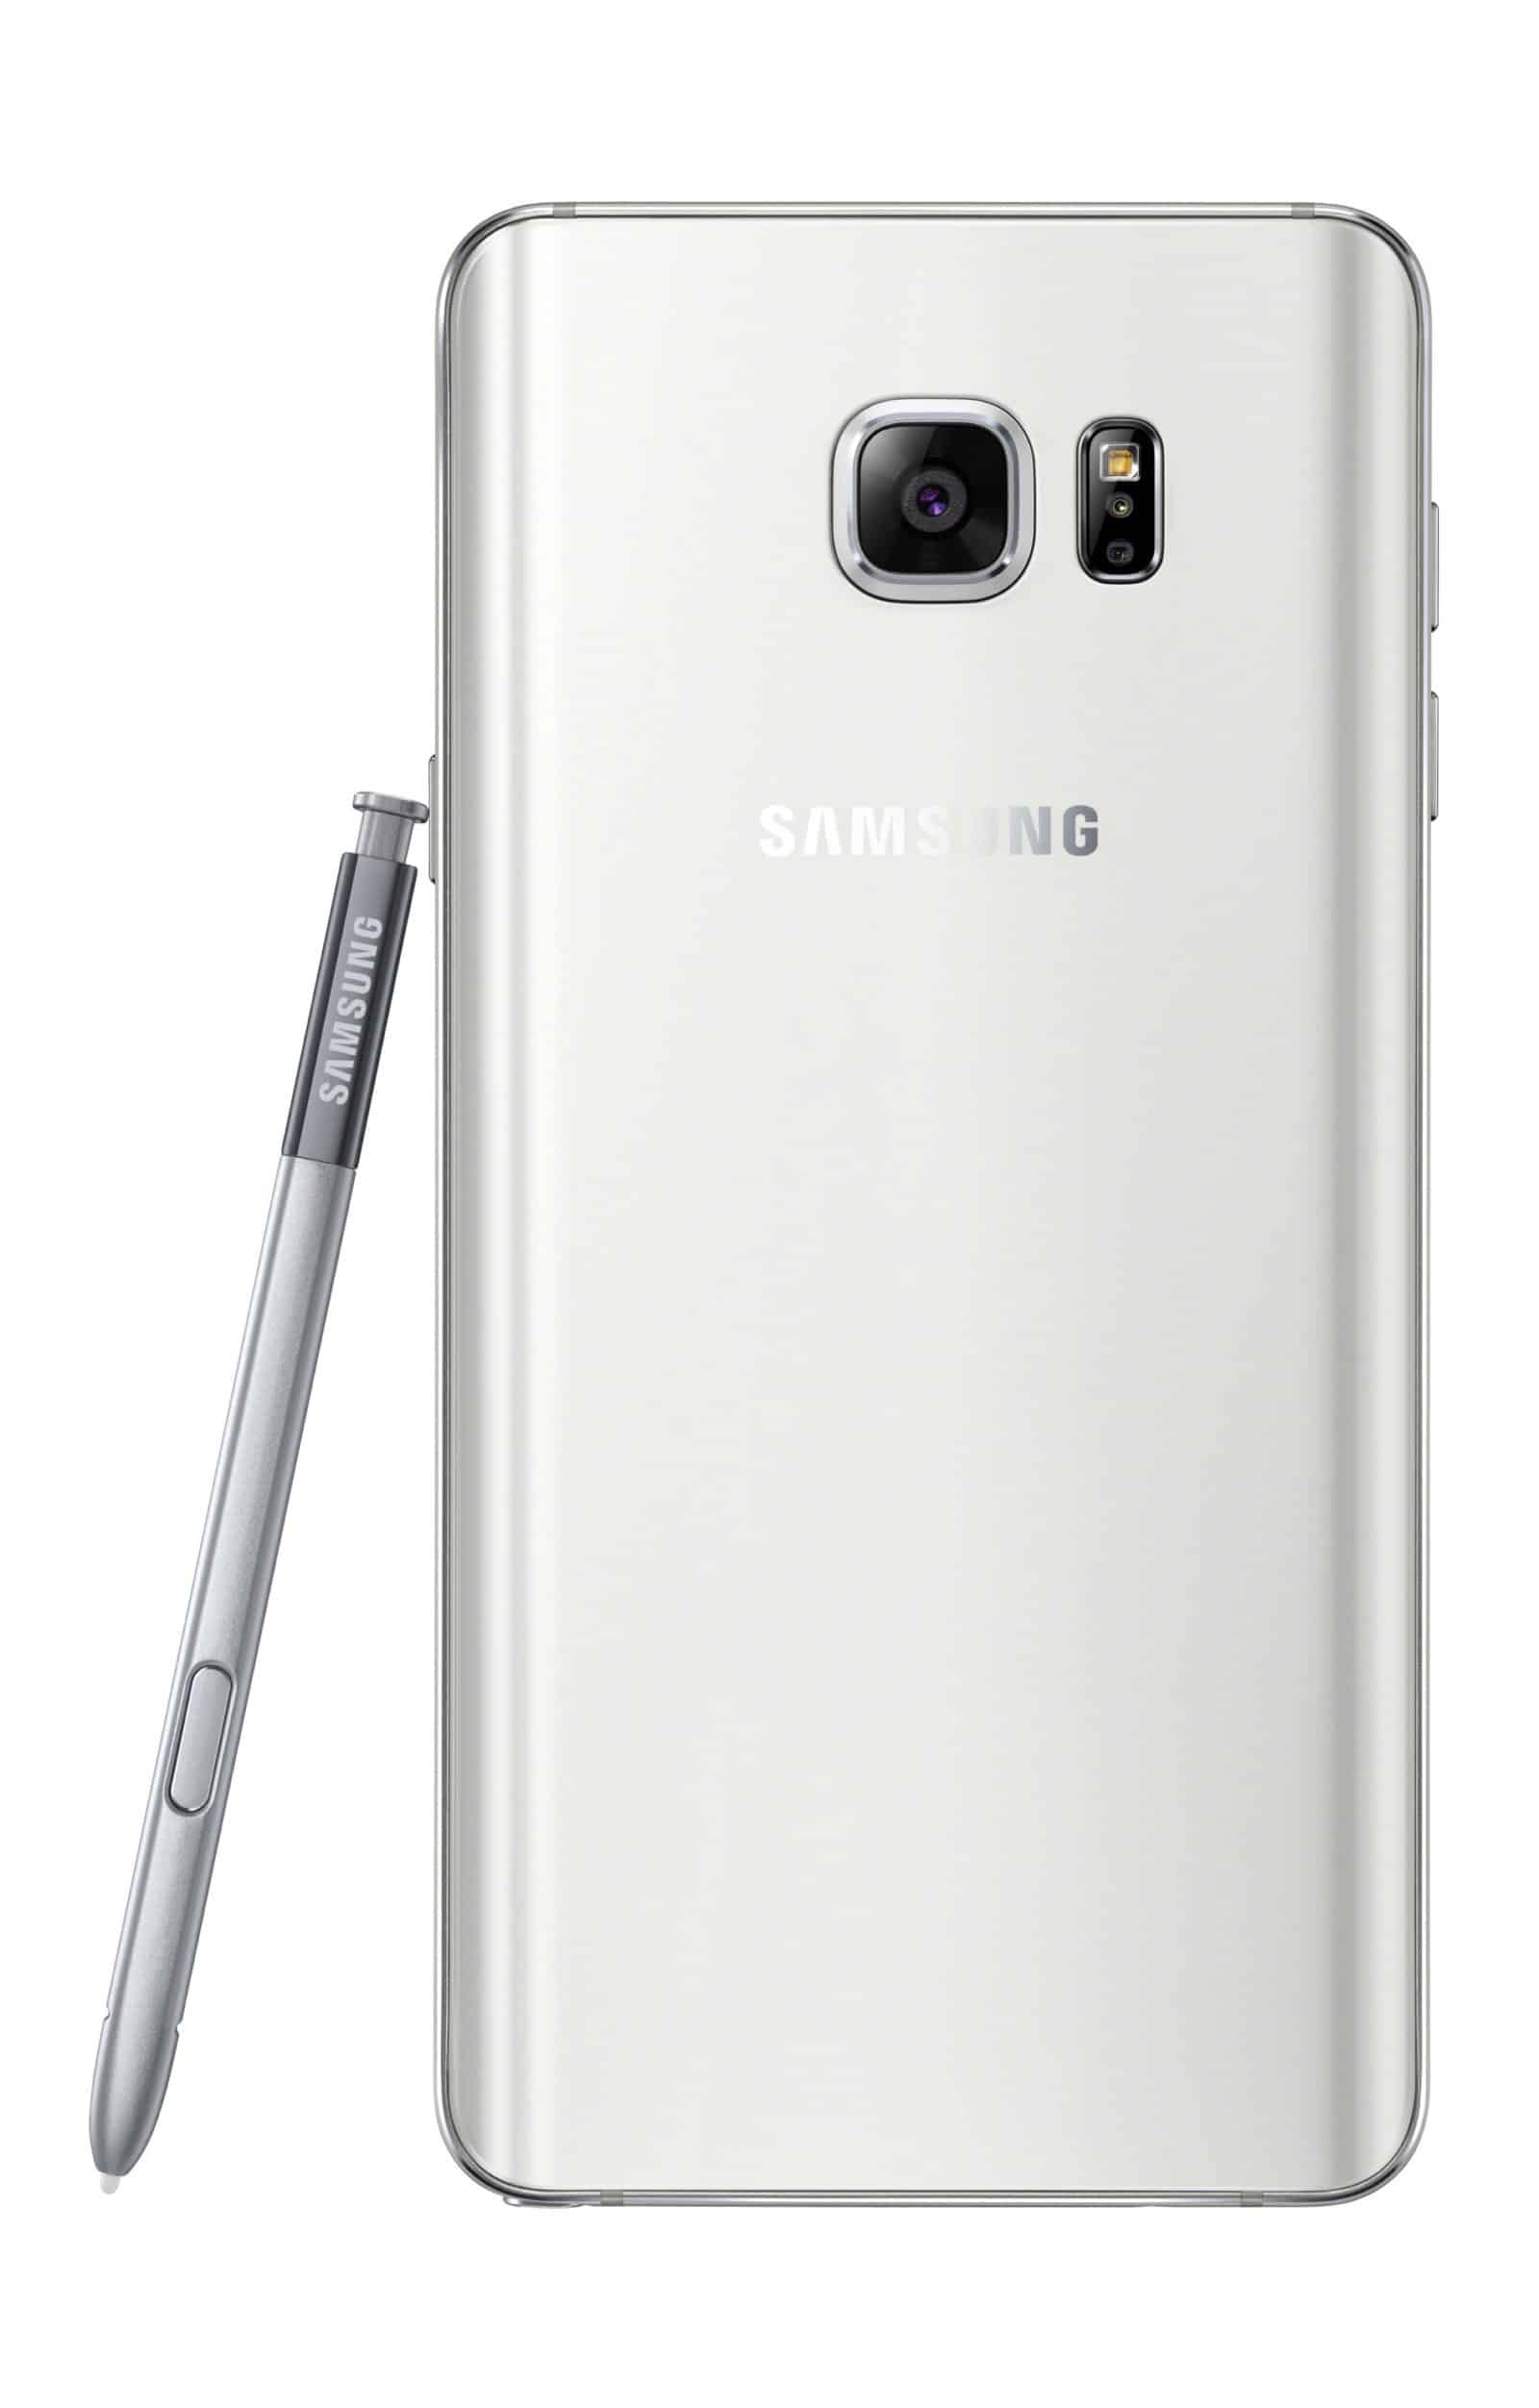 Galaxy Note 5 White 03